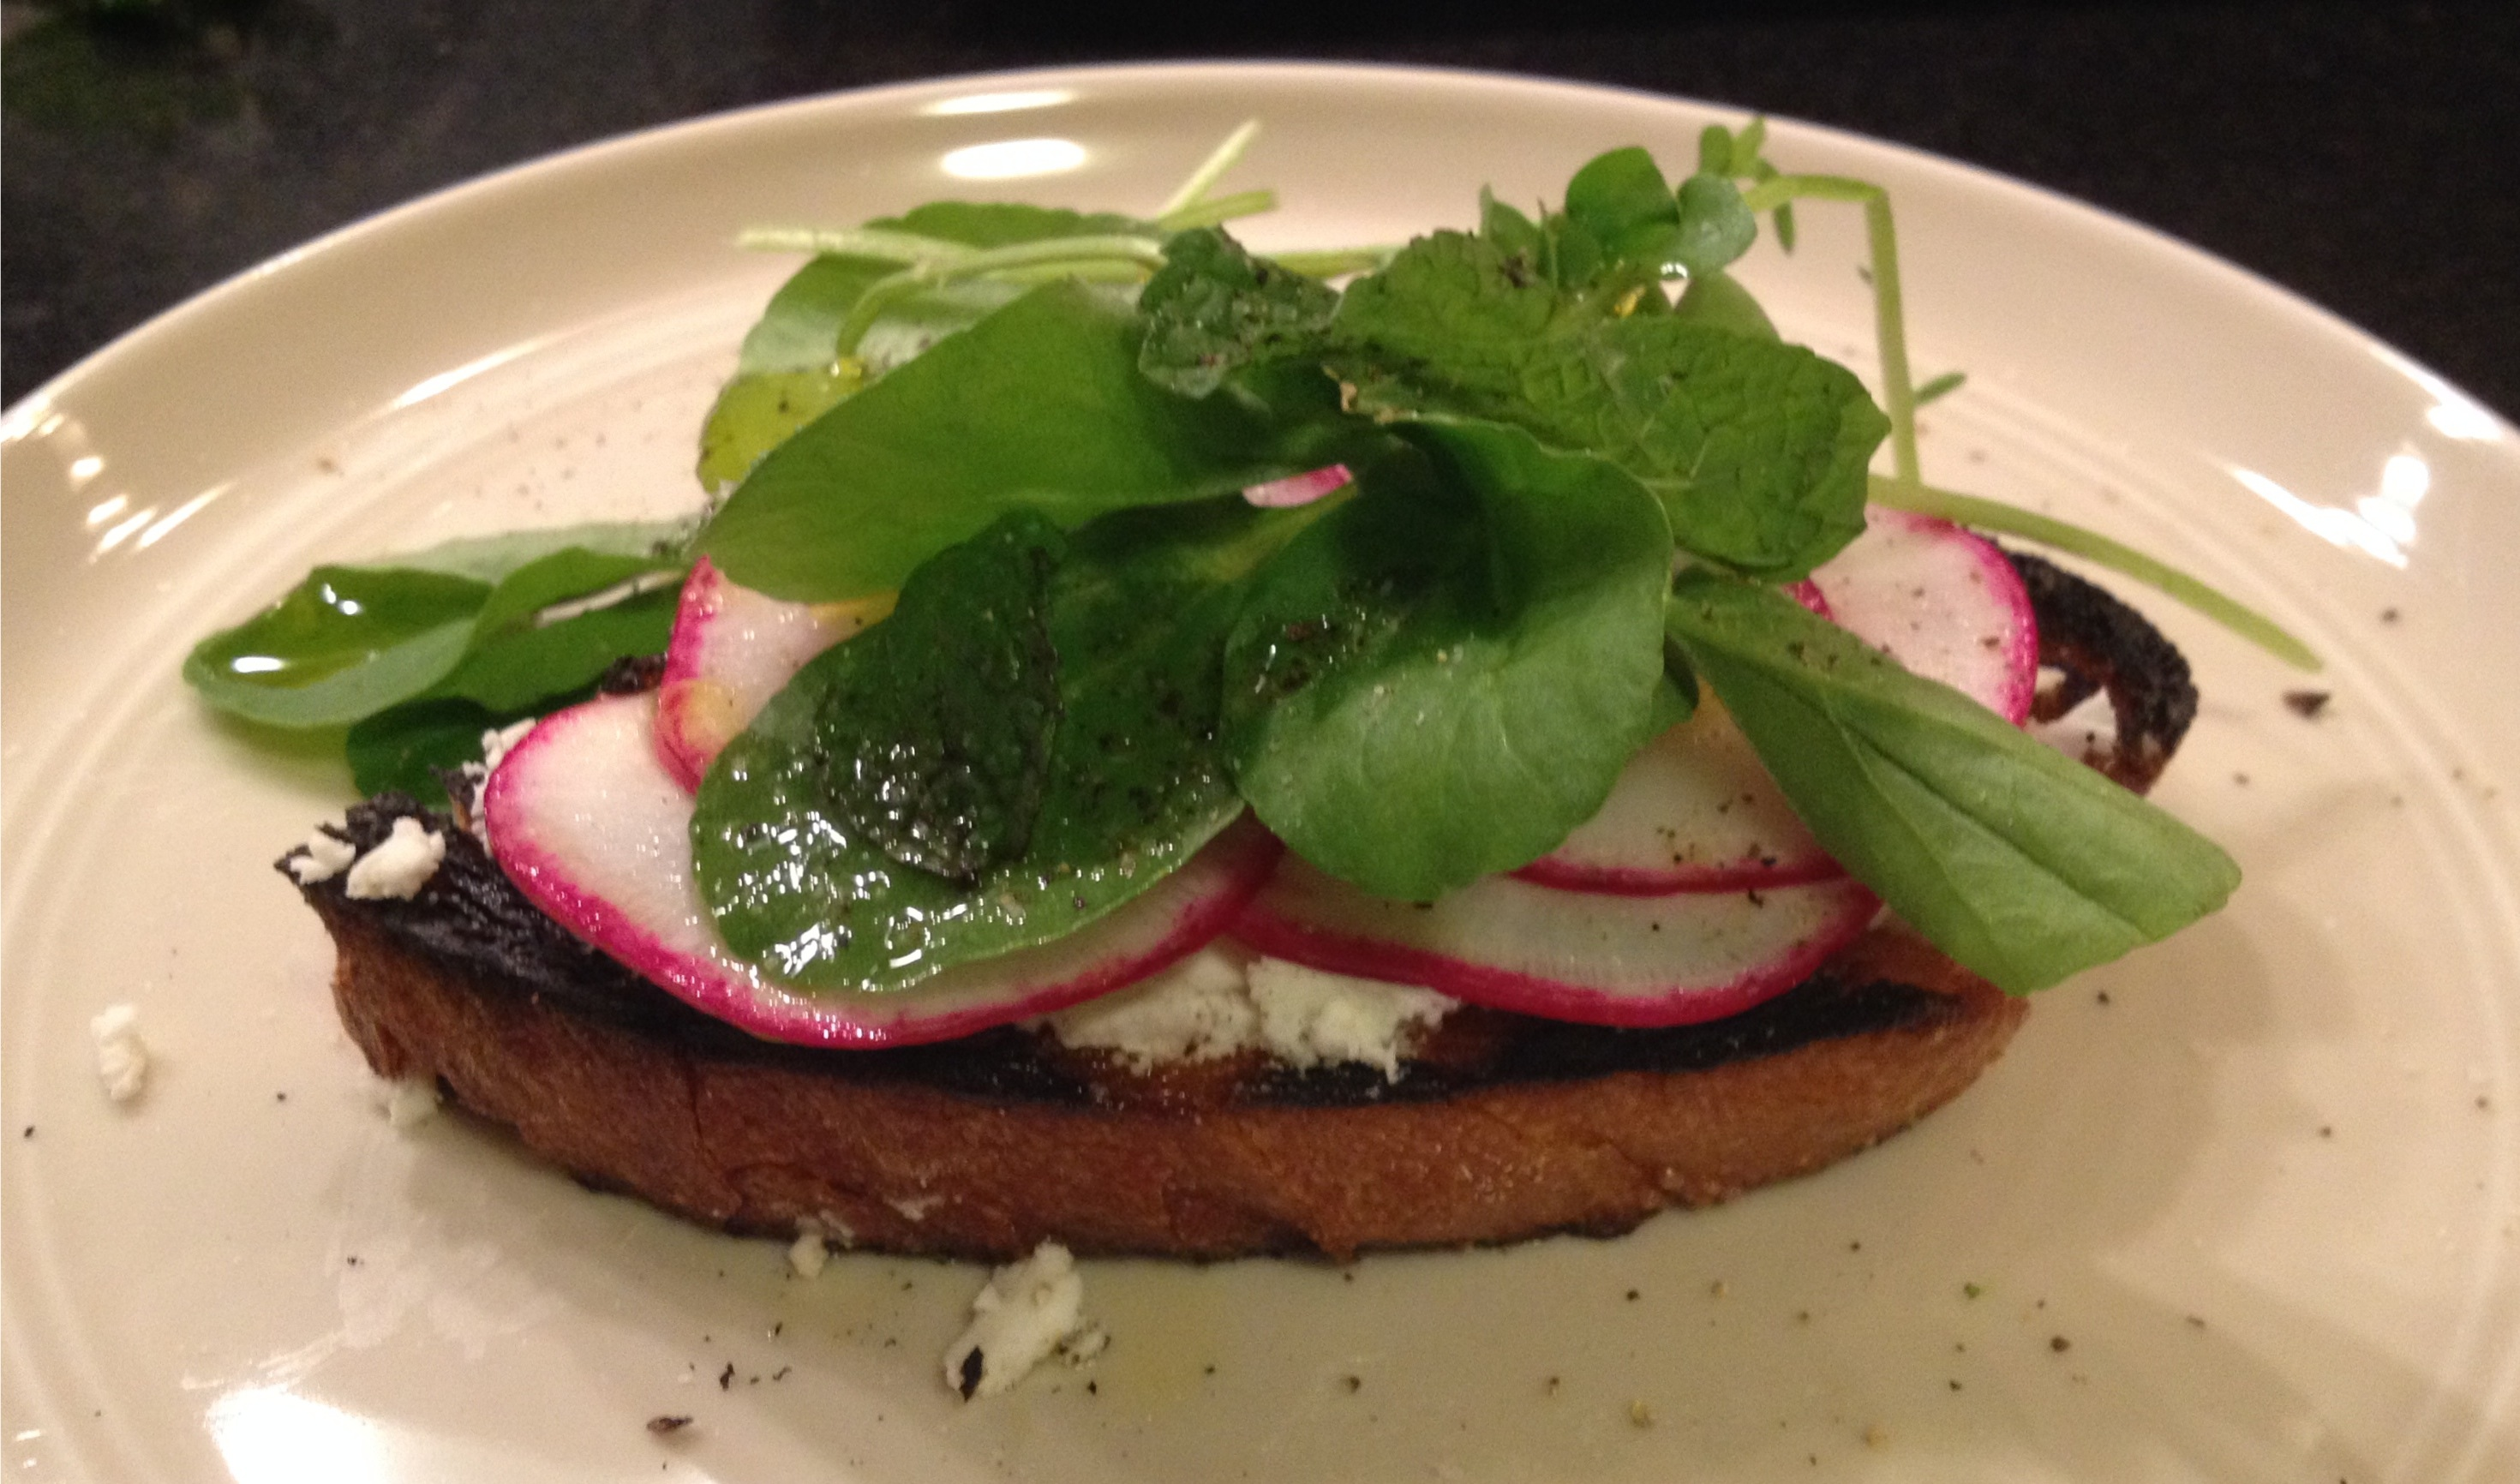 Feta radishes watercress and mint toasts serving on a plate.